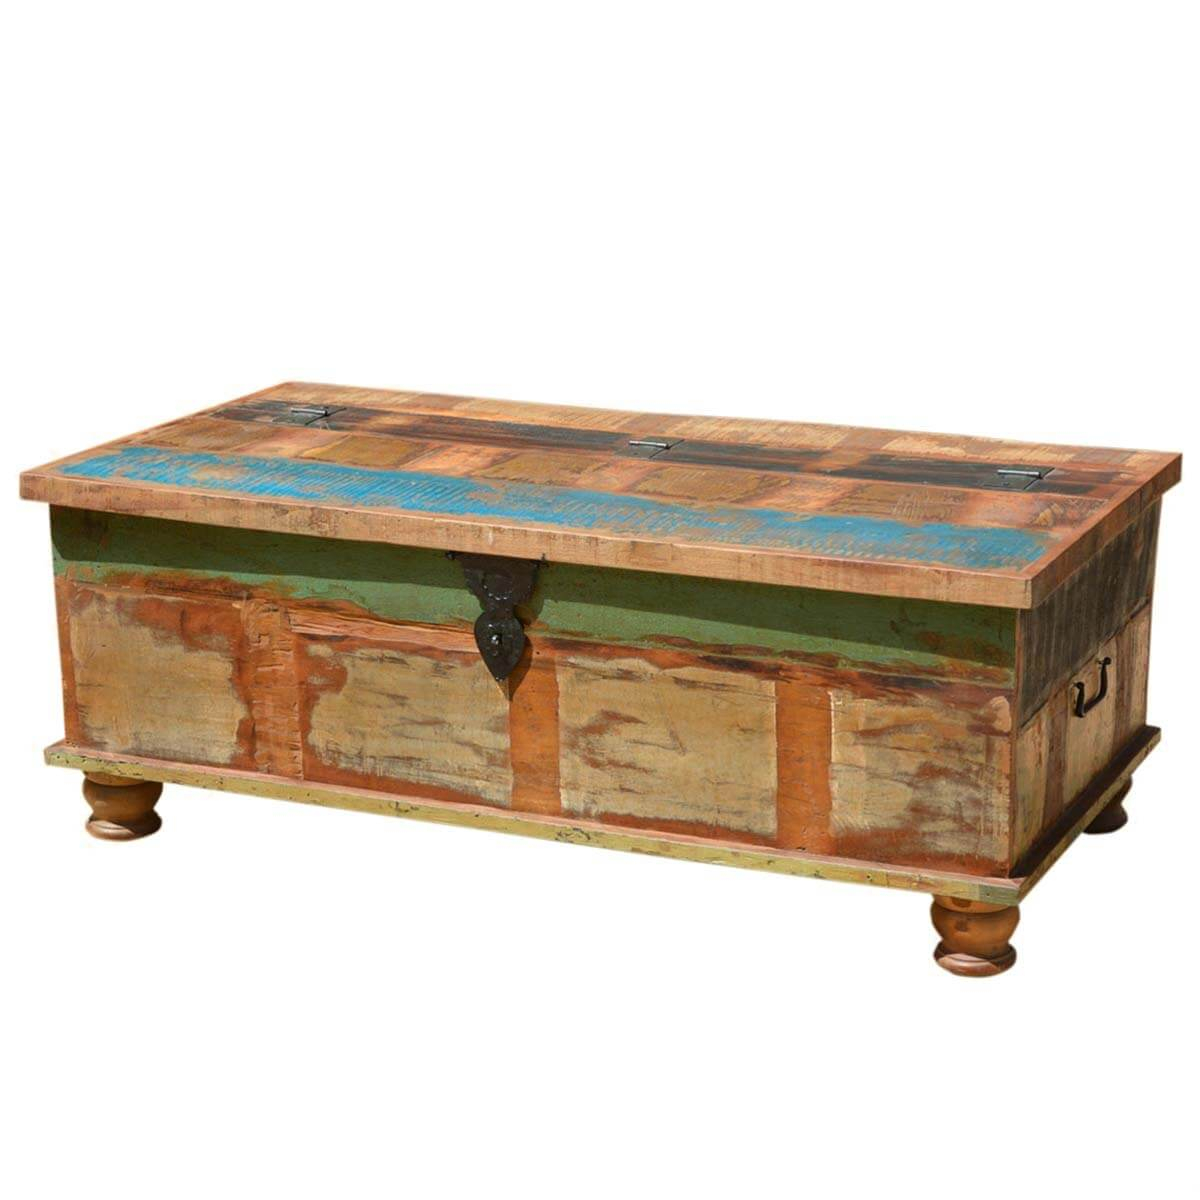 Grinnell Rustic Reclaimed Wood Coffee Table Storage Trunk throughout proportions 1200 X 1200